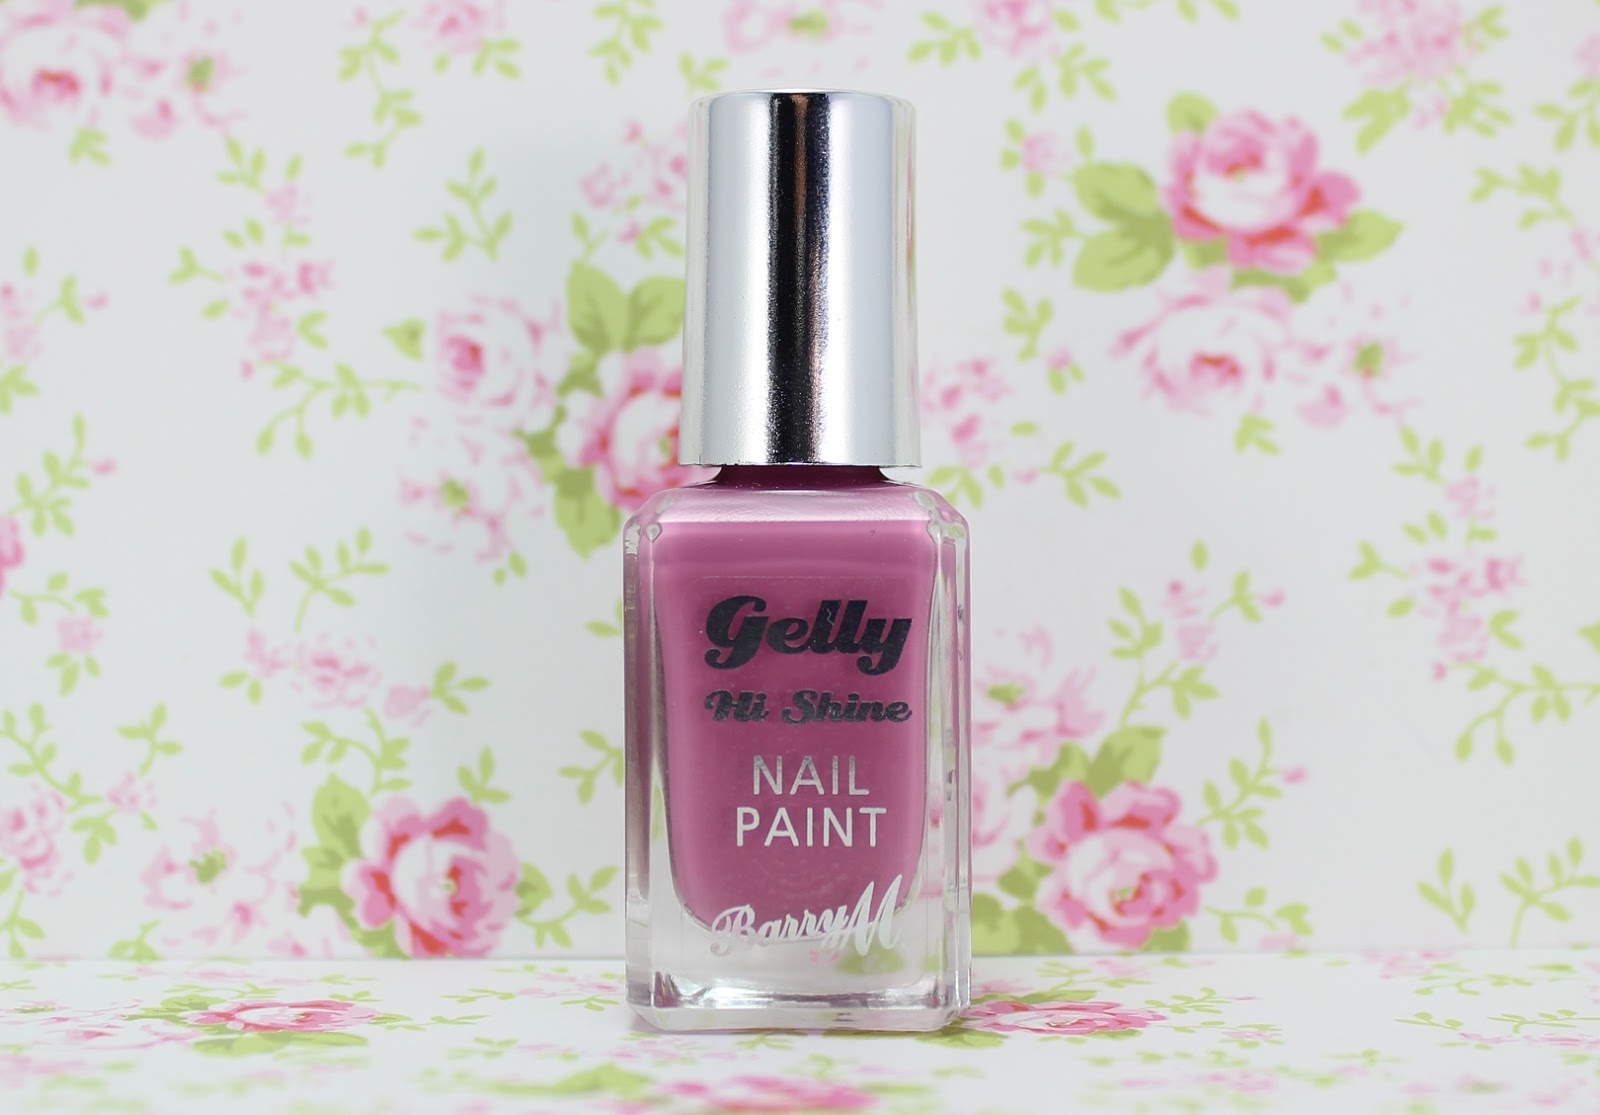 Barry M Nail Paint Acai Smoothie